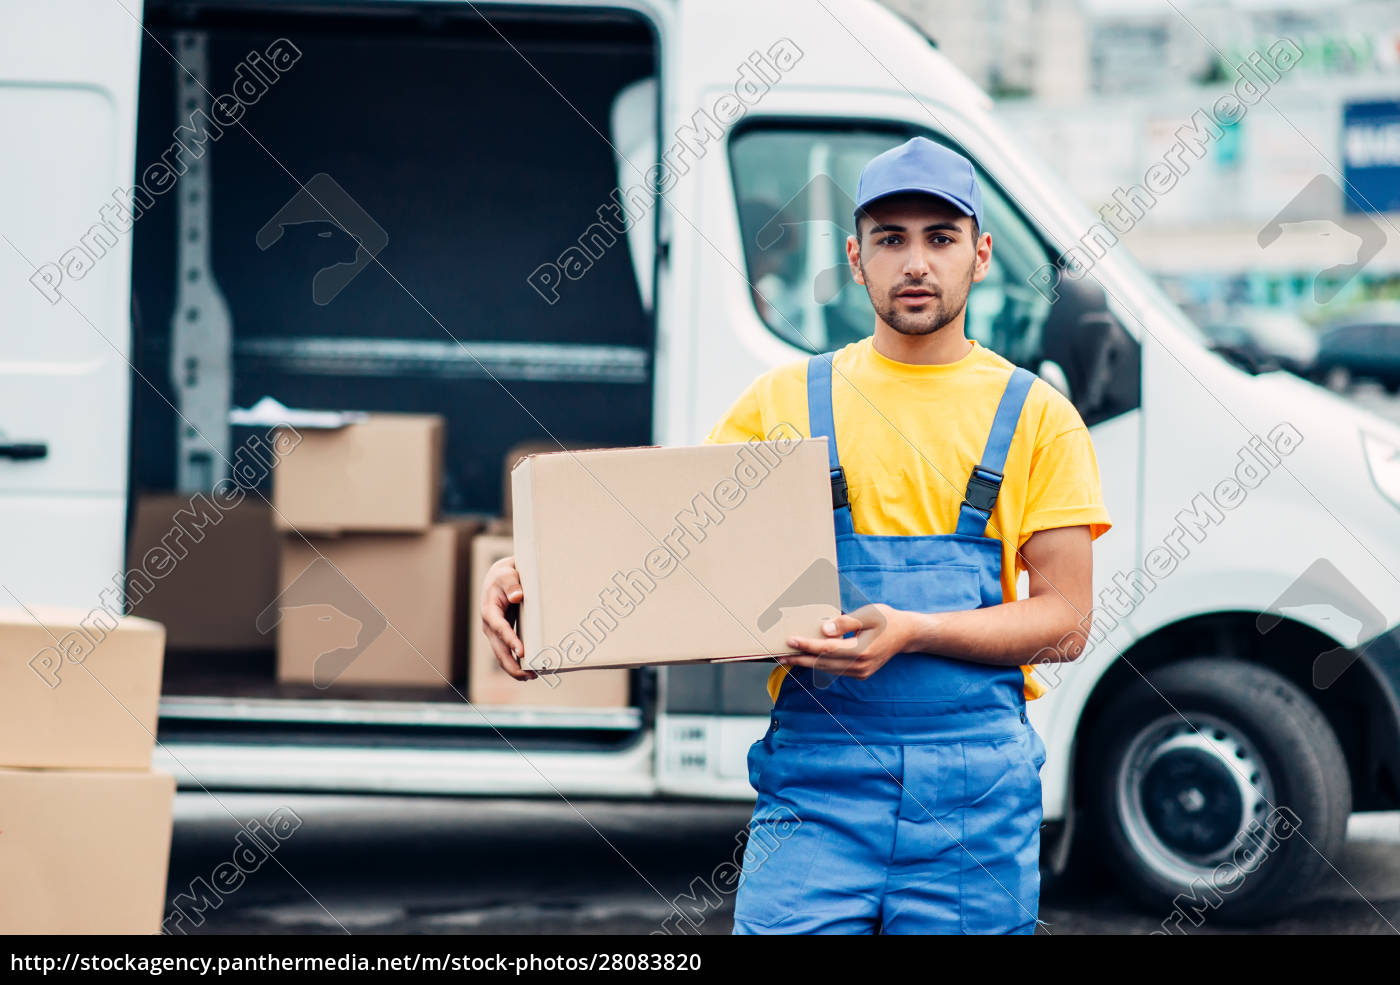 cargo, delivery, service, , male, courier, unload - 28083820